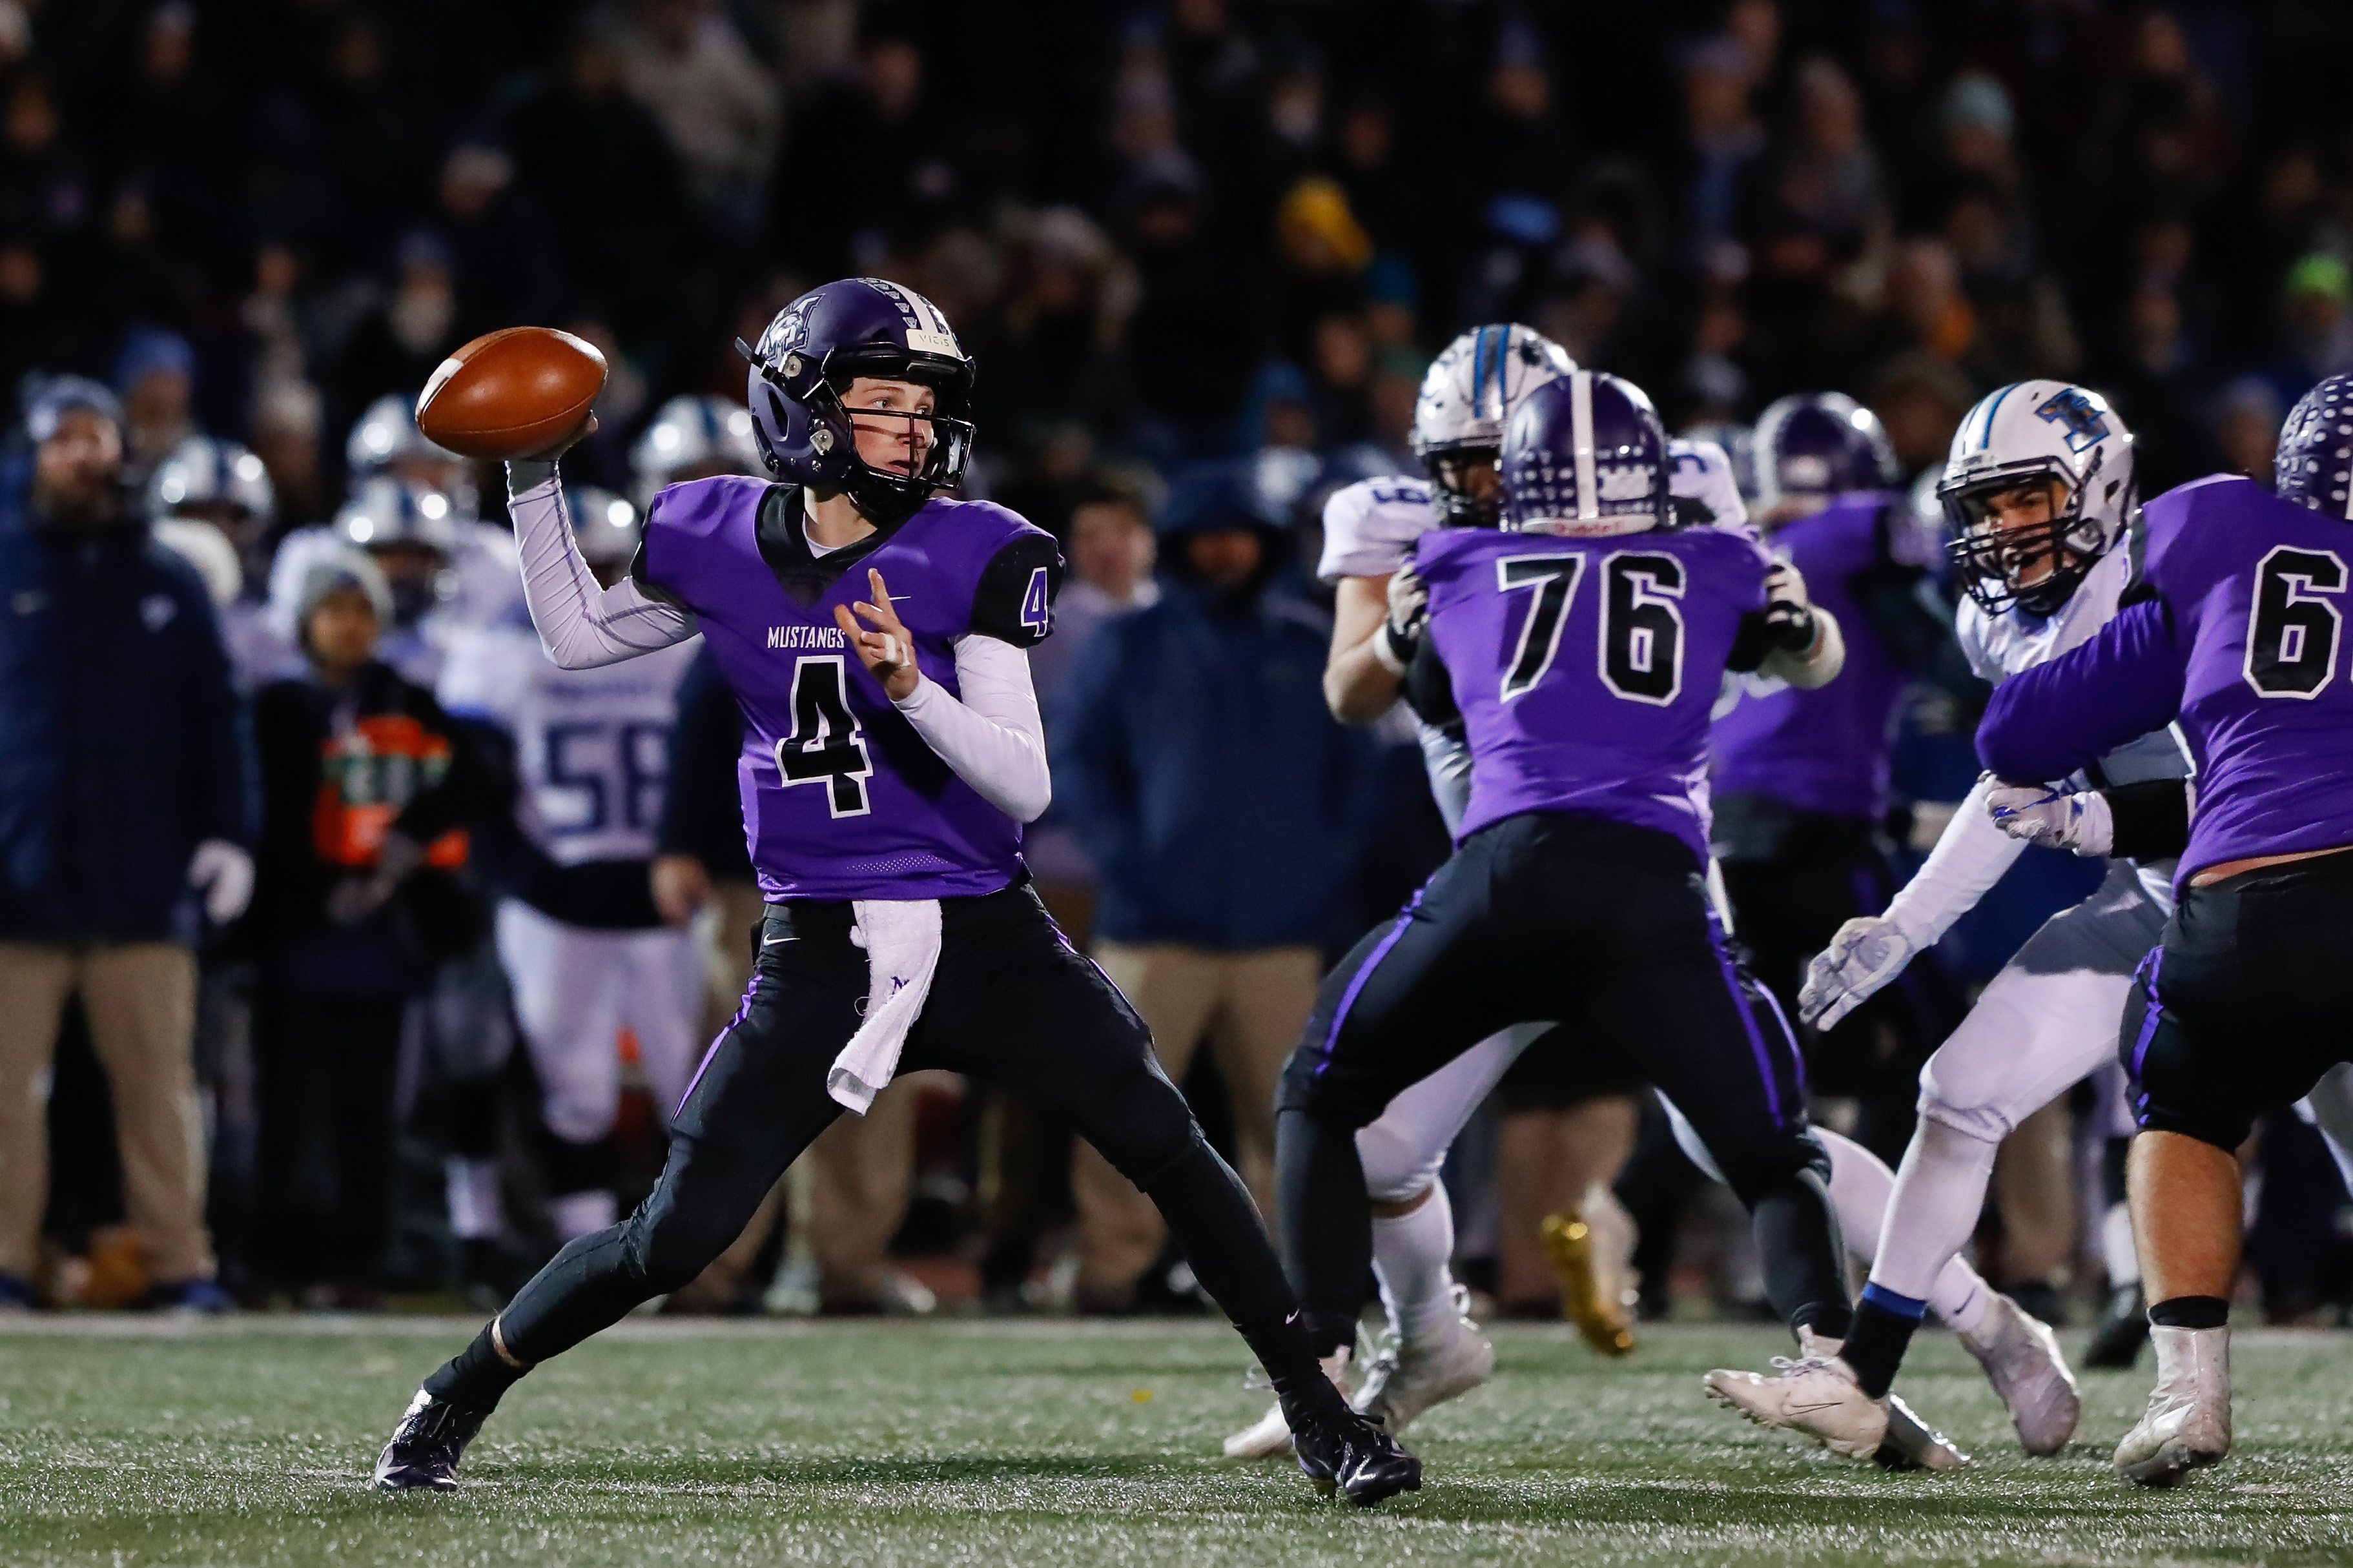 Rolling Meadows' Carson Schiller (4) looks for an open receiver against Prospect.